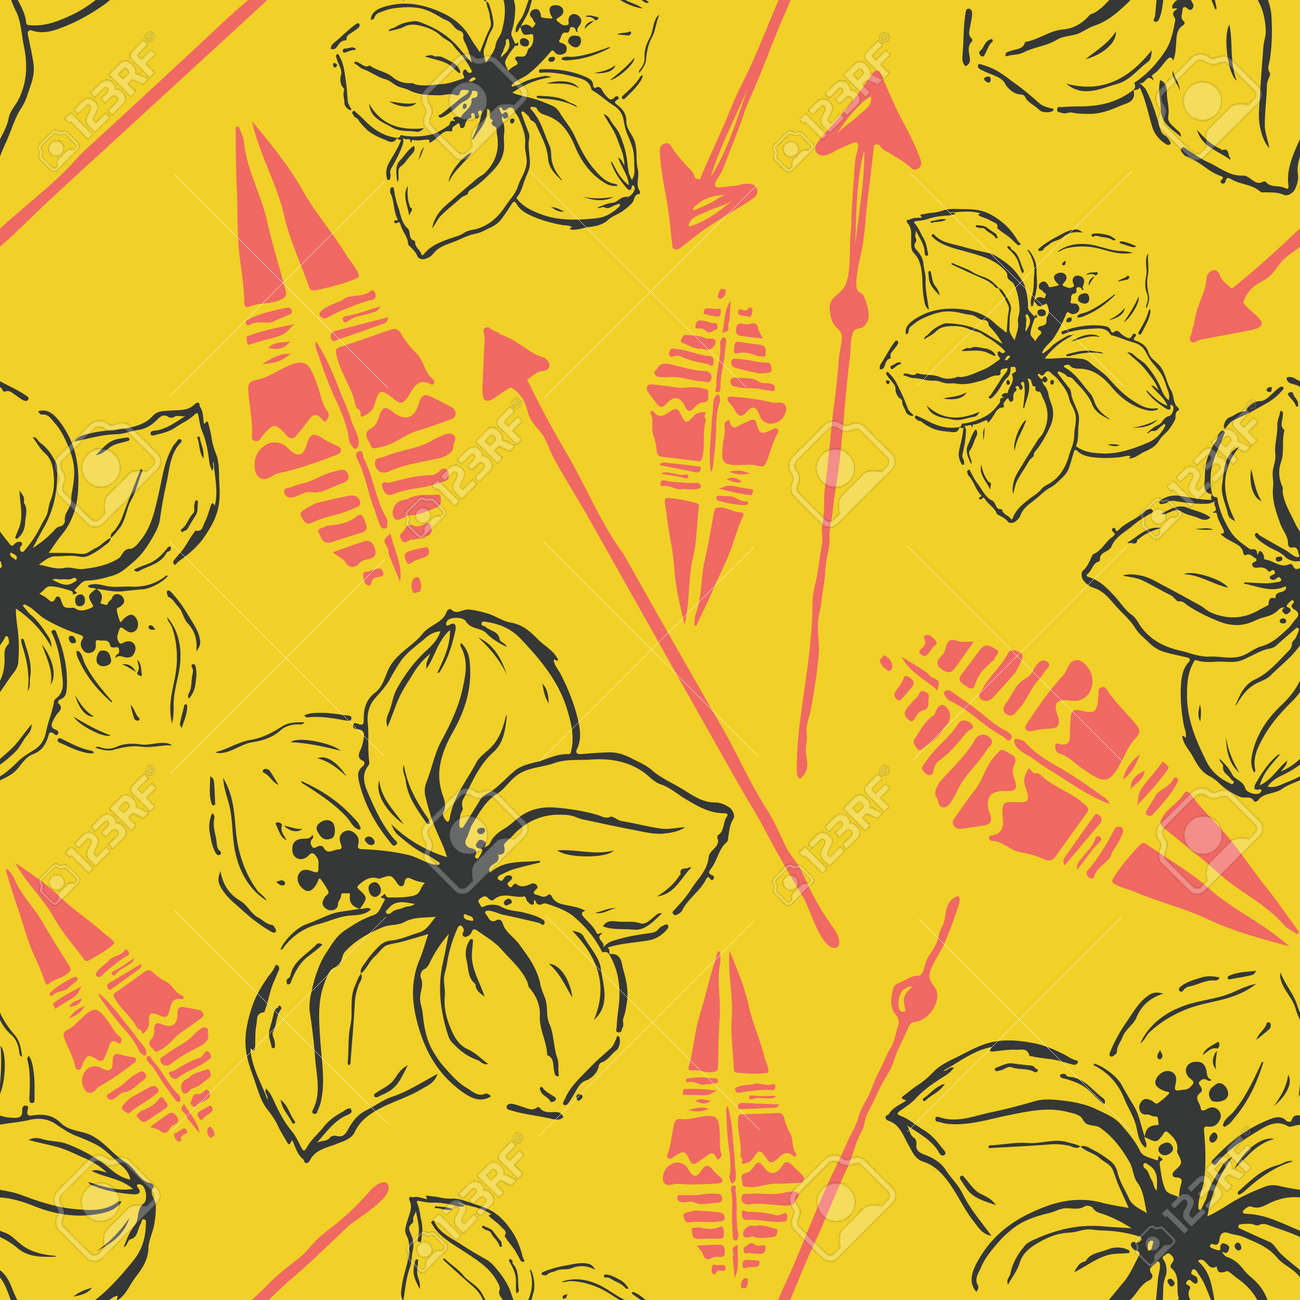 Vector seamless pattern universal colorful summer hawaiian flowers universal colorful summer hawaiian flowers aztec arrows in yellow gray pink modern design wallpaper wrapping paper tourism izmirmasajfo